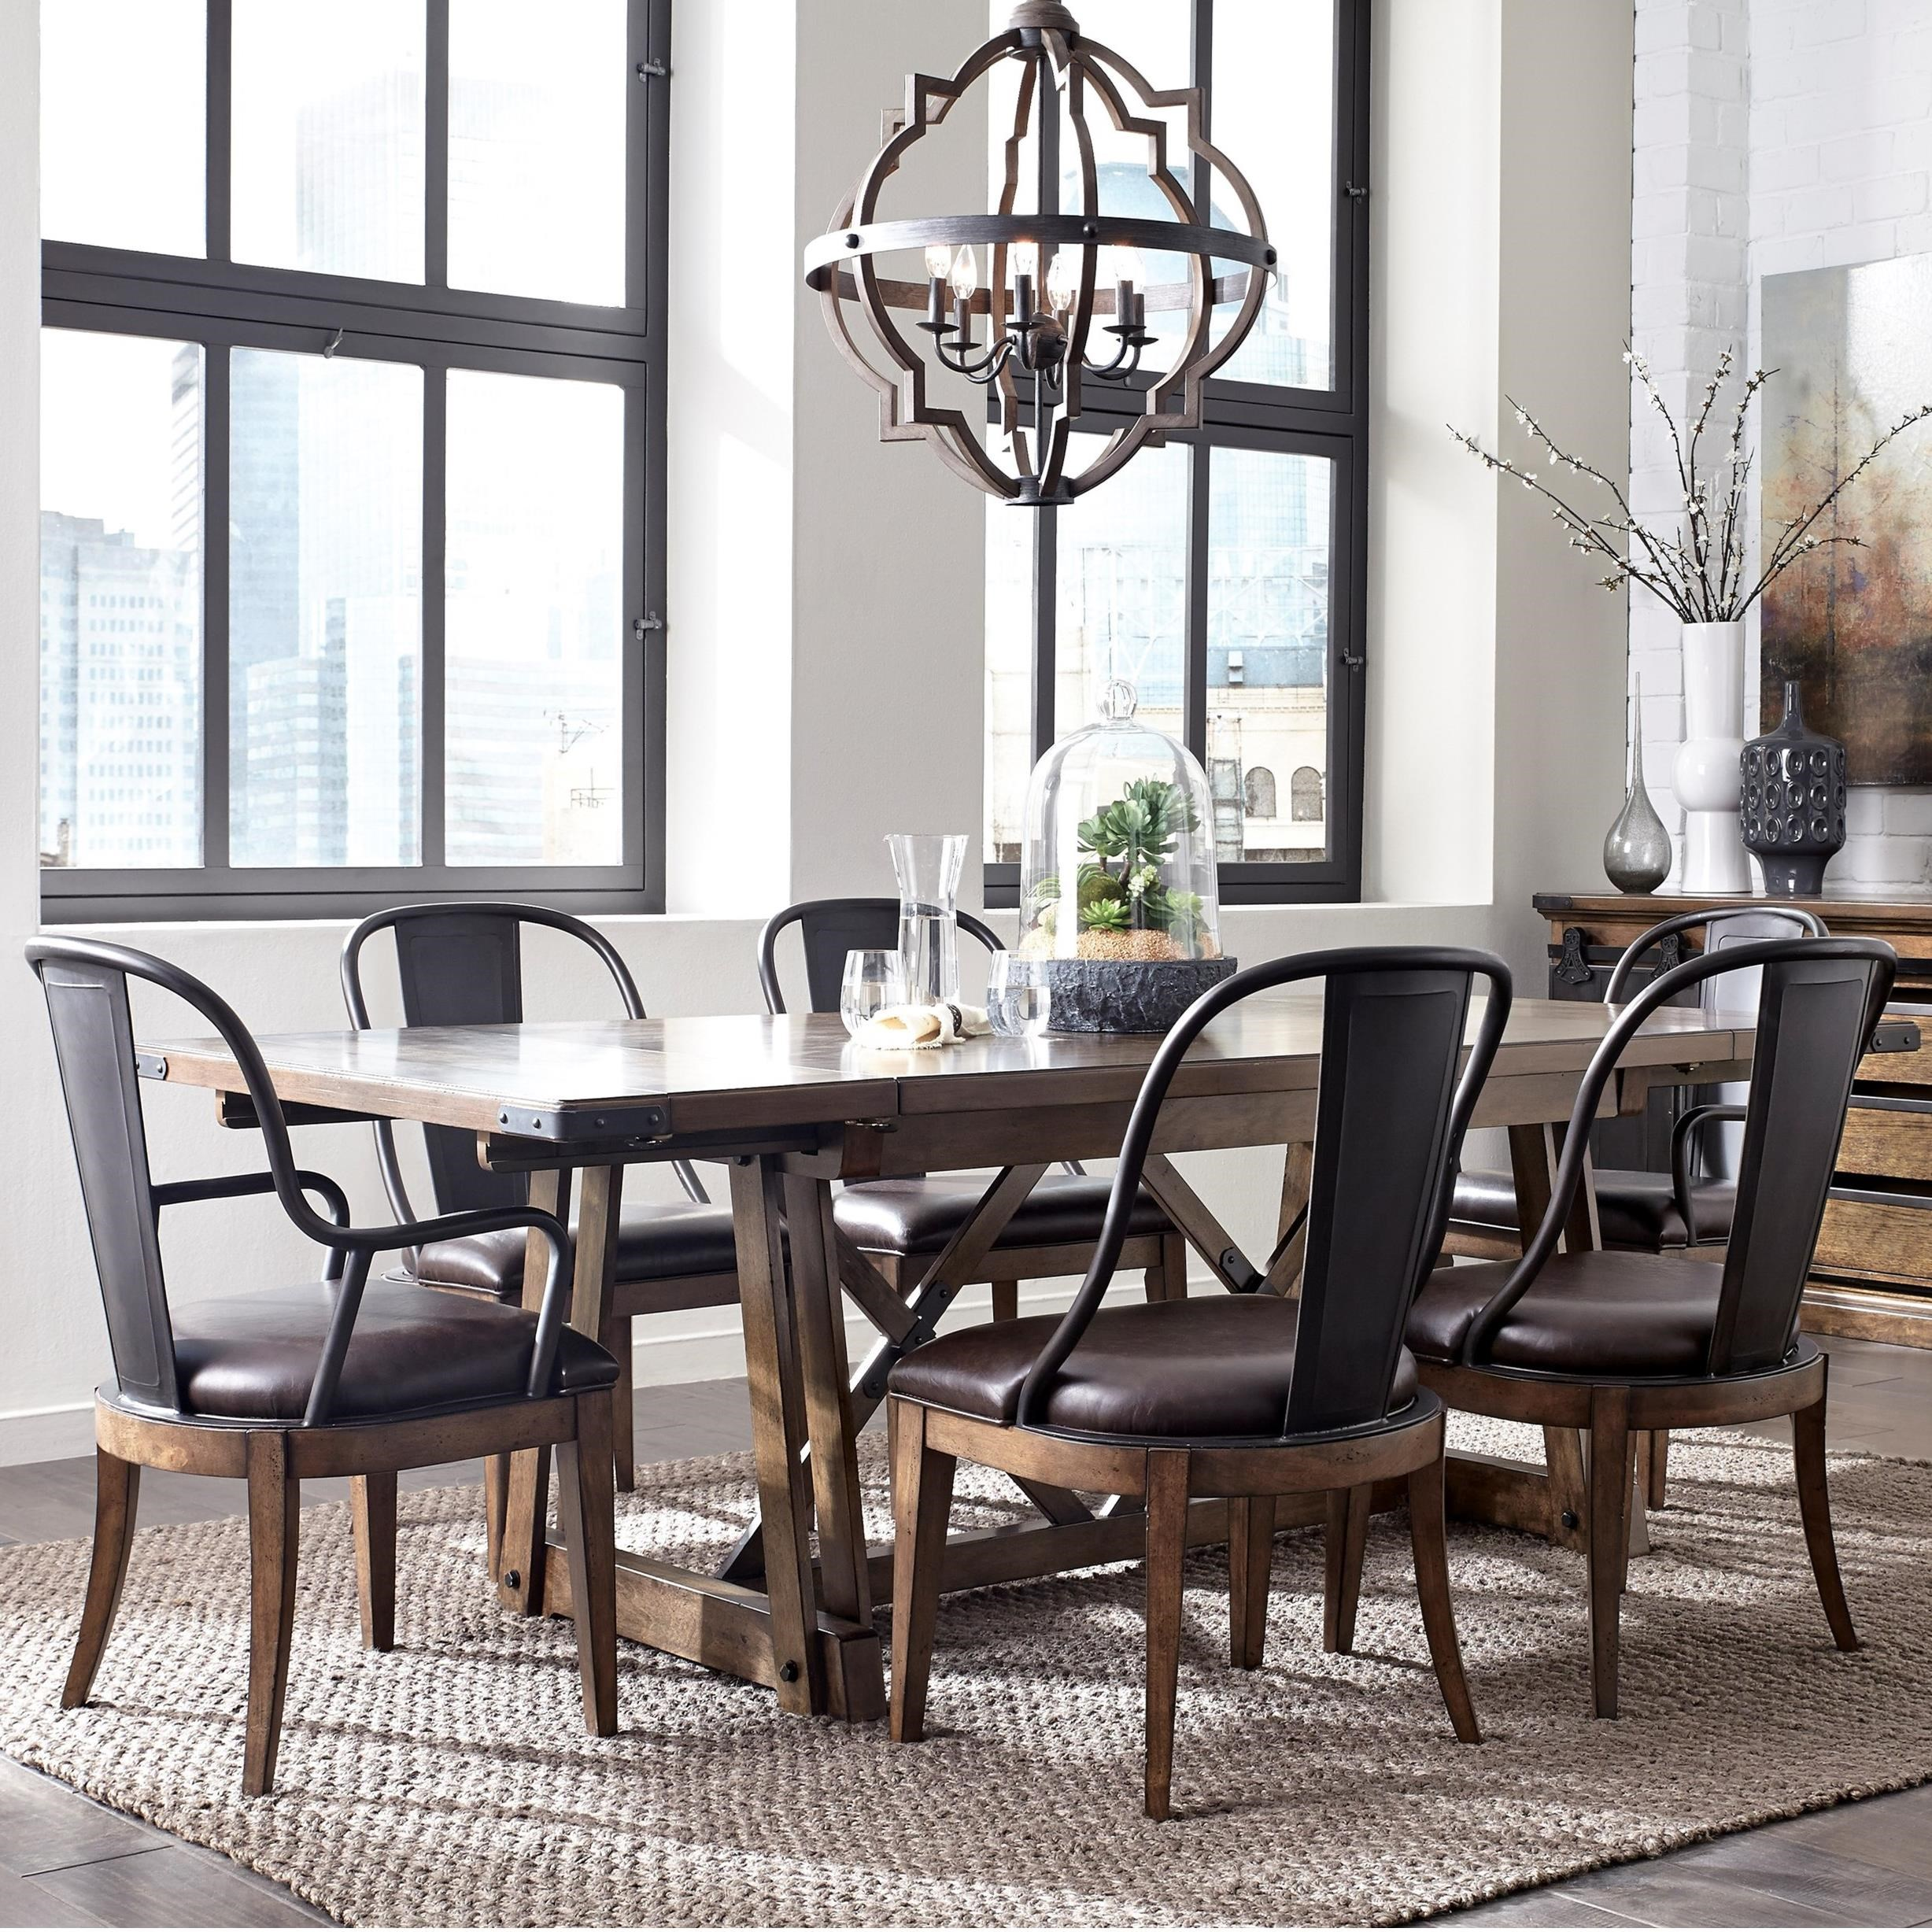 Pulaski Furniture Weston Loft 7 Piece Trestle Table And Metal Chair